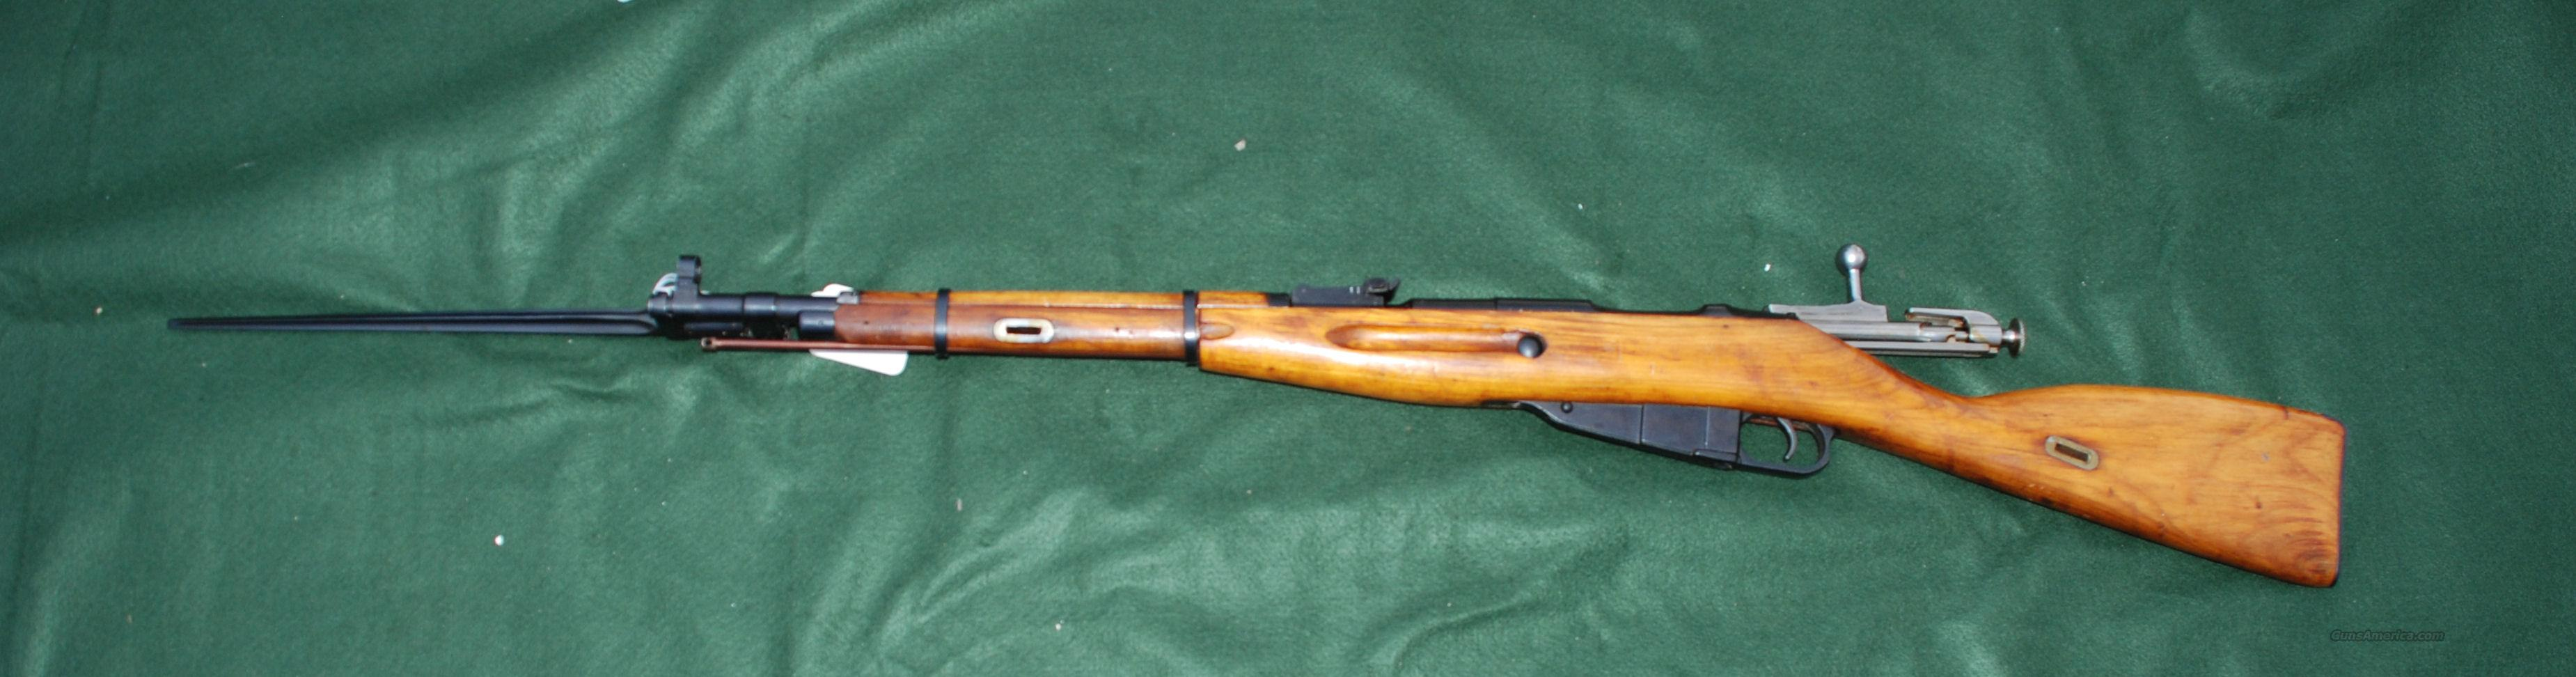 Mosin Nagant Carbine M44  Guns > Rifles > Mosin-Nagant Rifles/Carbines